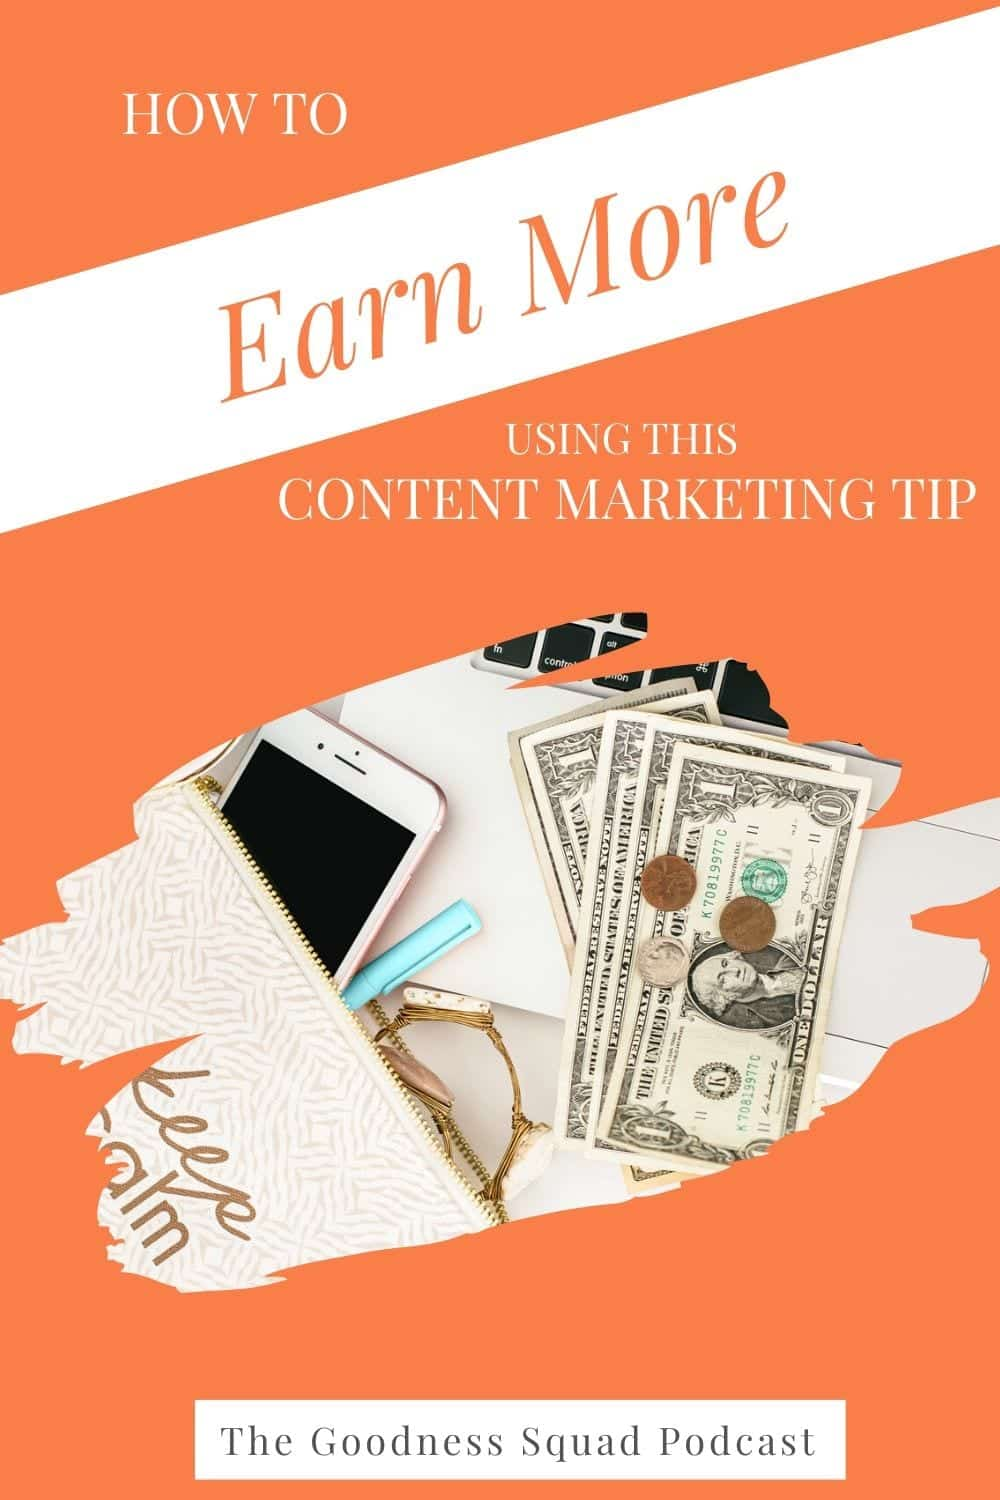 How to earn money as a content marketer - $200K in 2 years, in fact